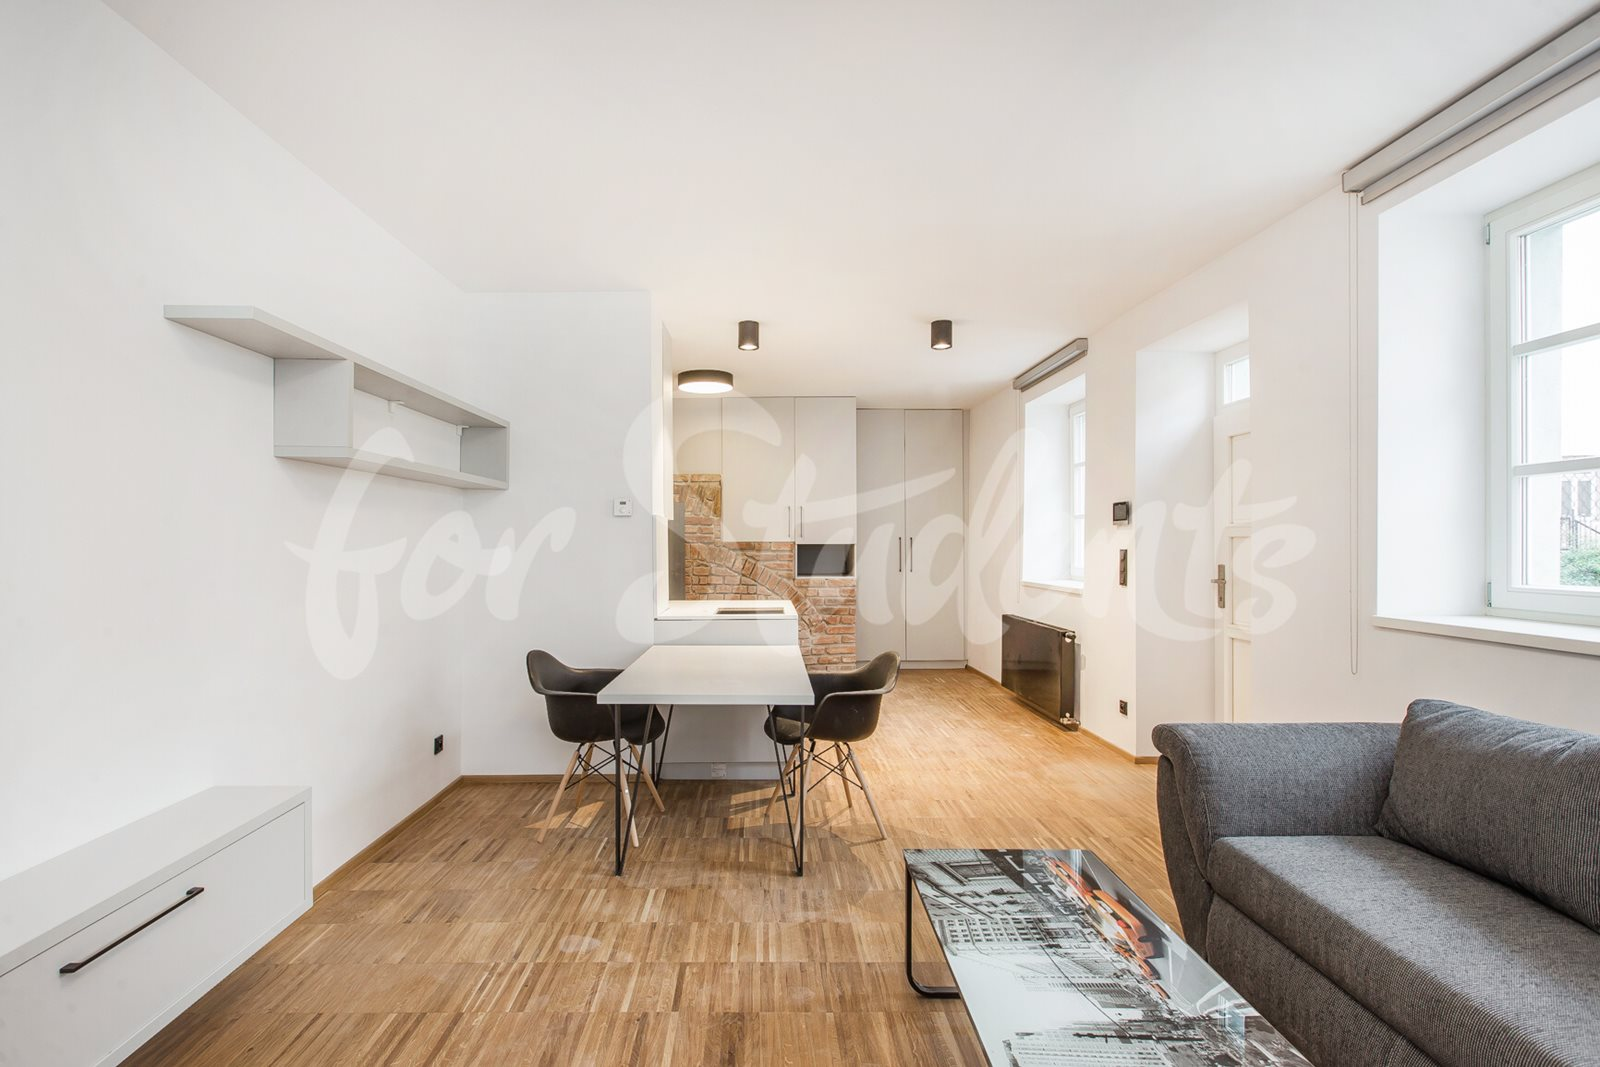 Luxurious one bedroom apartment in the Old Town, Hradec Králové